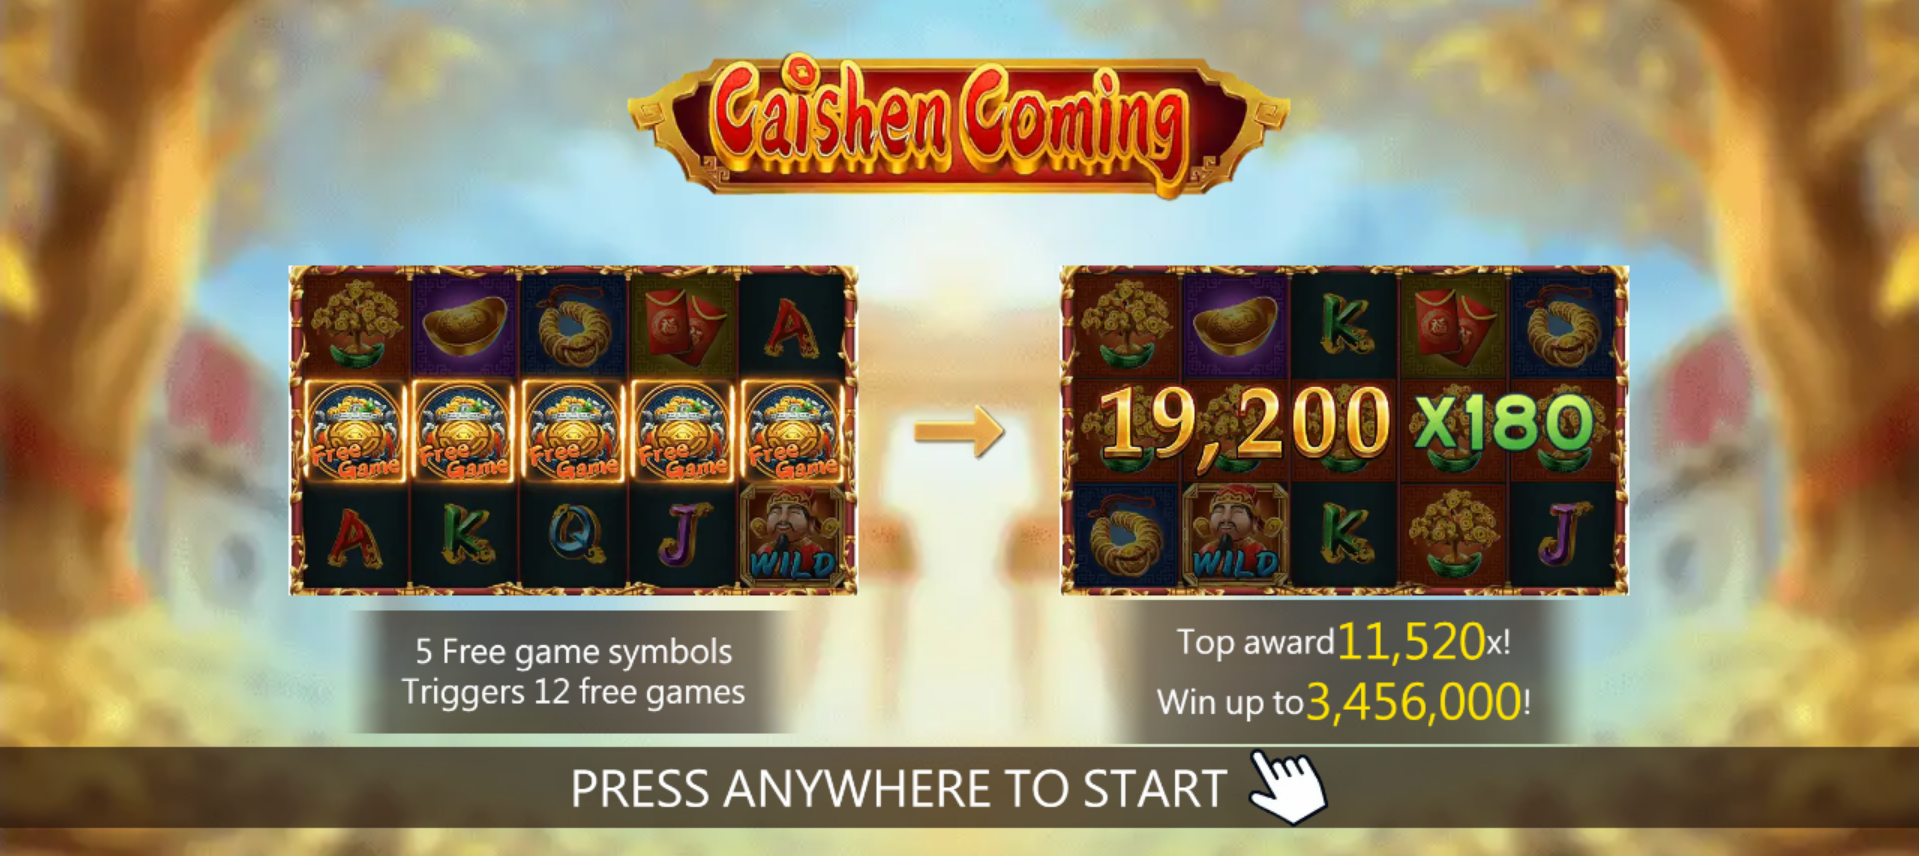 Caishen Coming Slot Online (2)